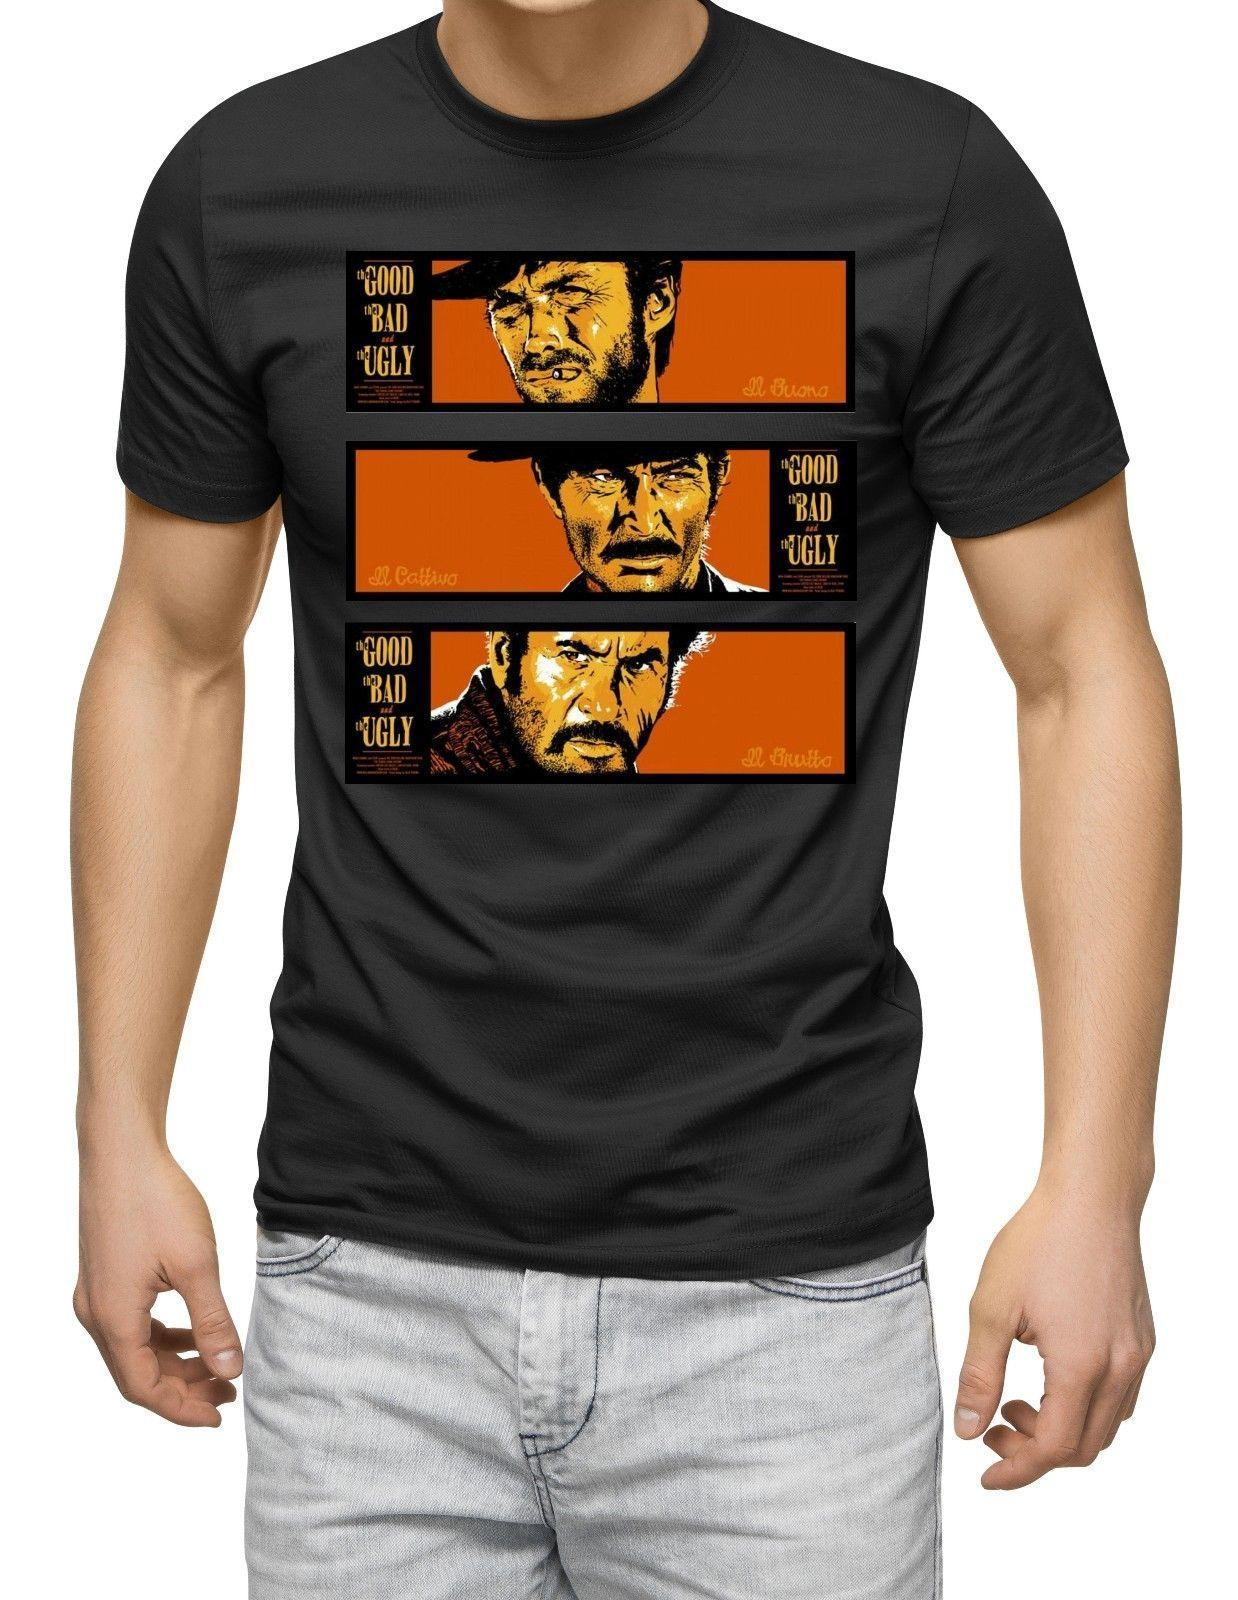 The Good The Bad The Ugly T-Shirt MOVIE FILM COWBOY 60S 70S Clint Eastwood